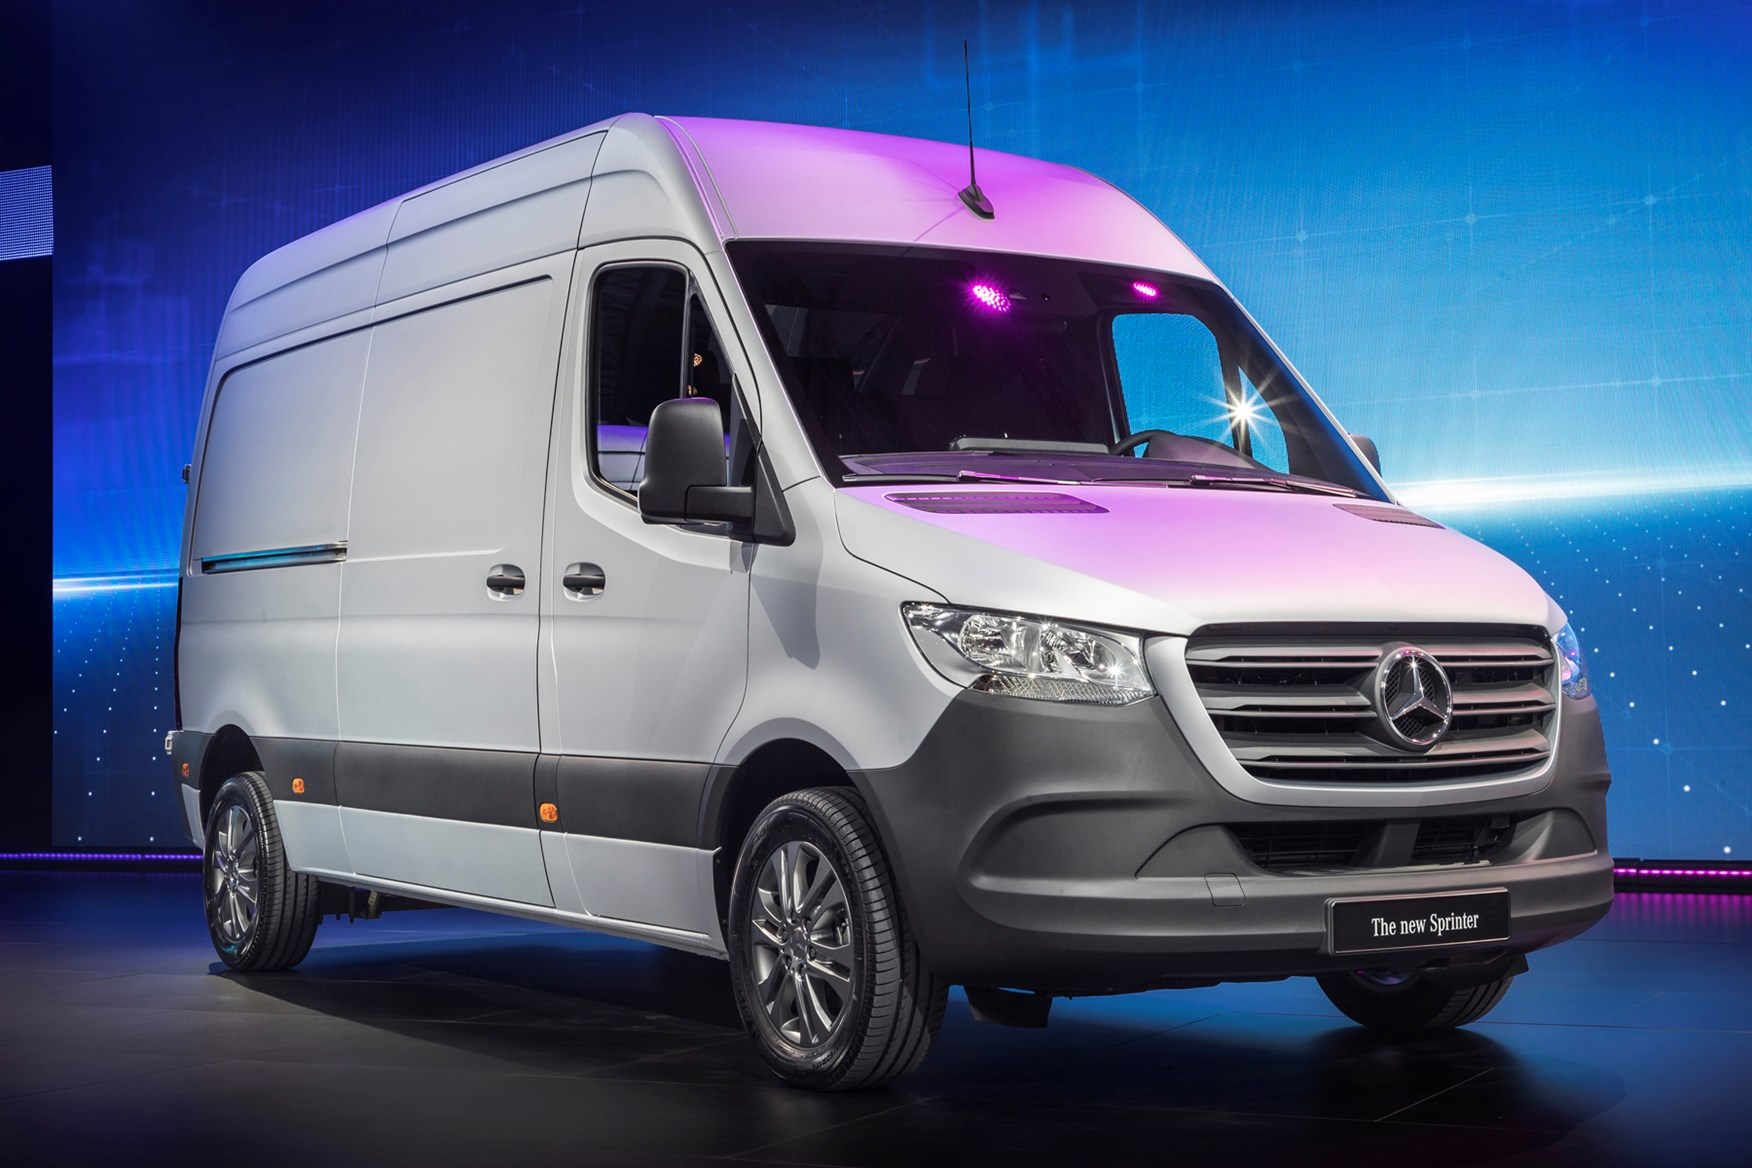 acc9deb240 All-new 2018 Mercedes Sprinter official technical details and pictures on  Parkers Vans